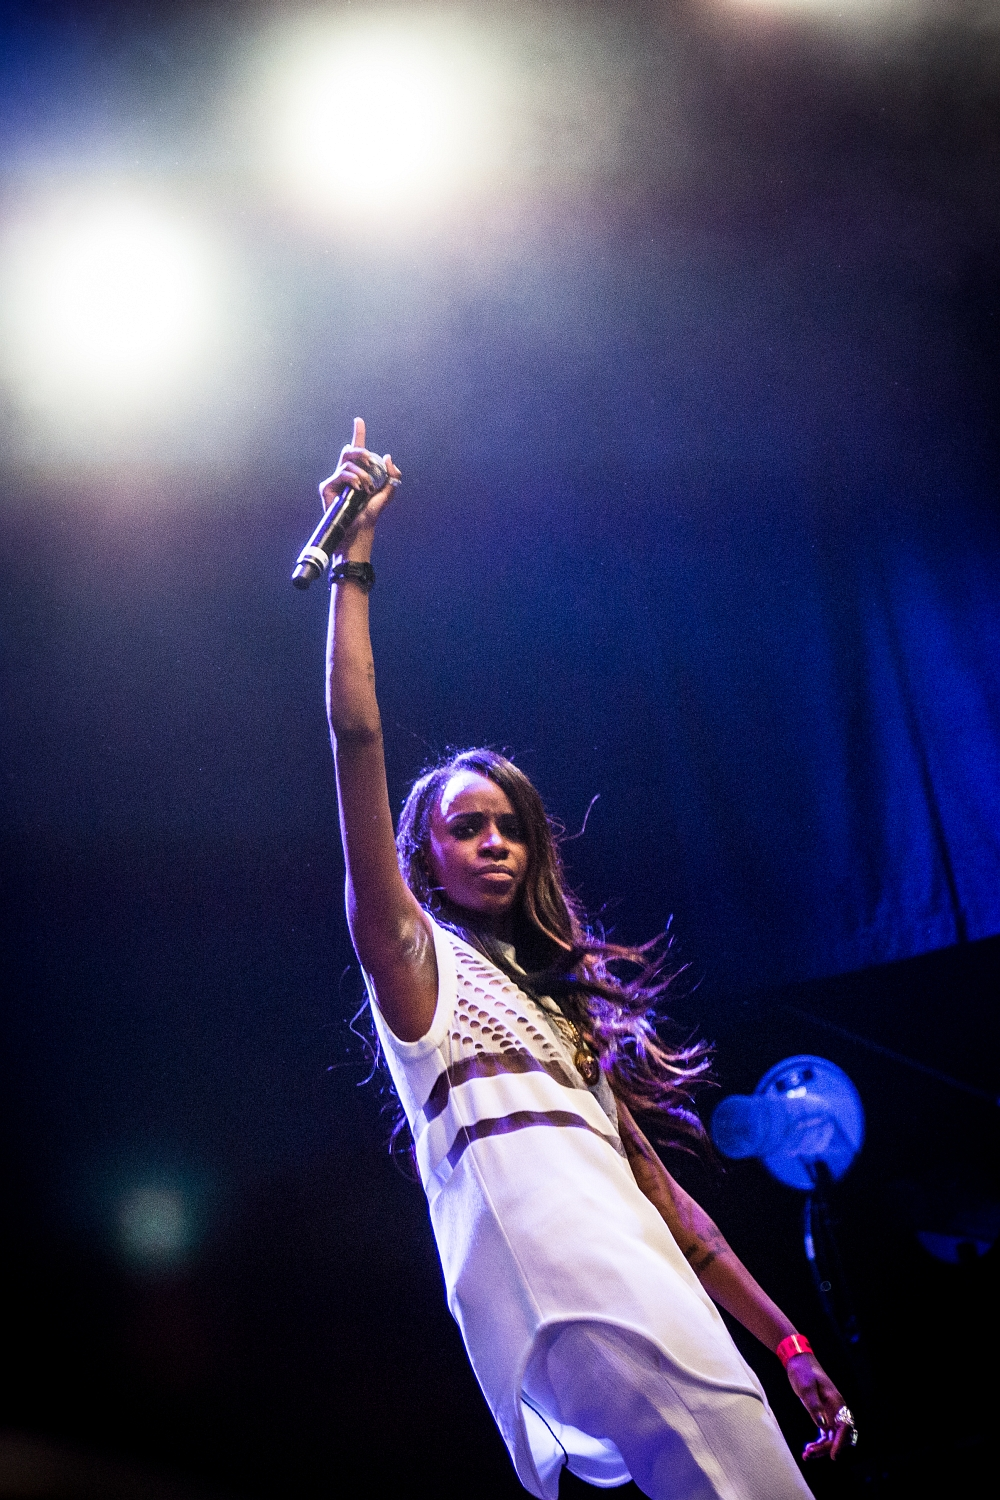 Angel Haze @ Rock Werchter 2013 (Jan Van den Bulck)